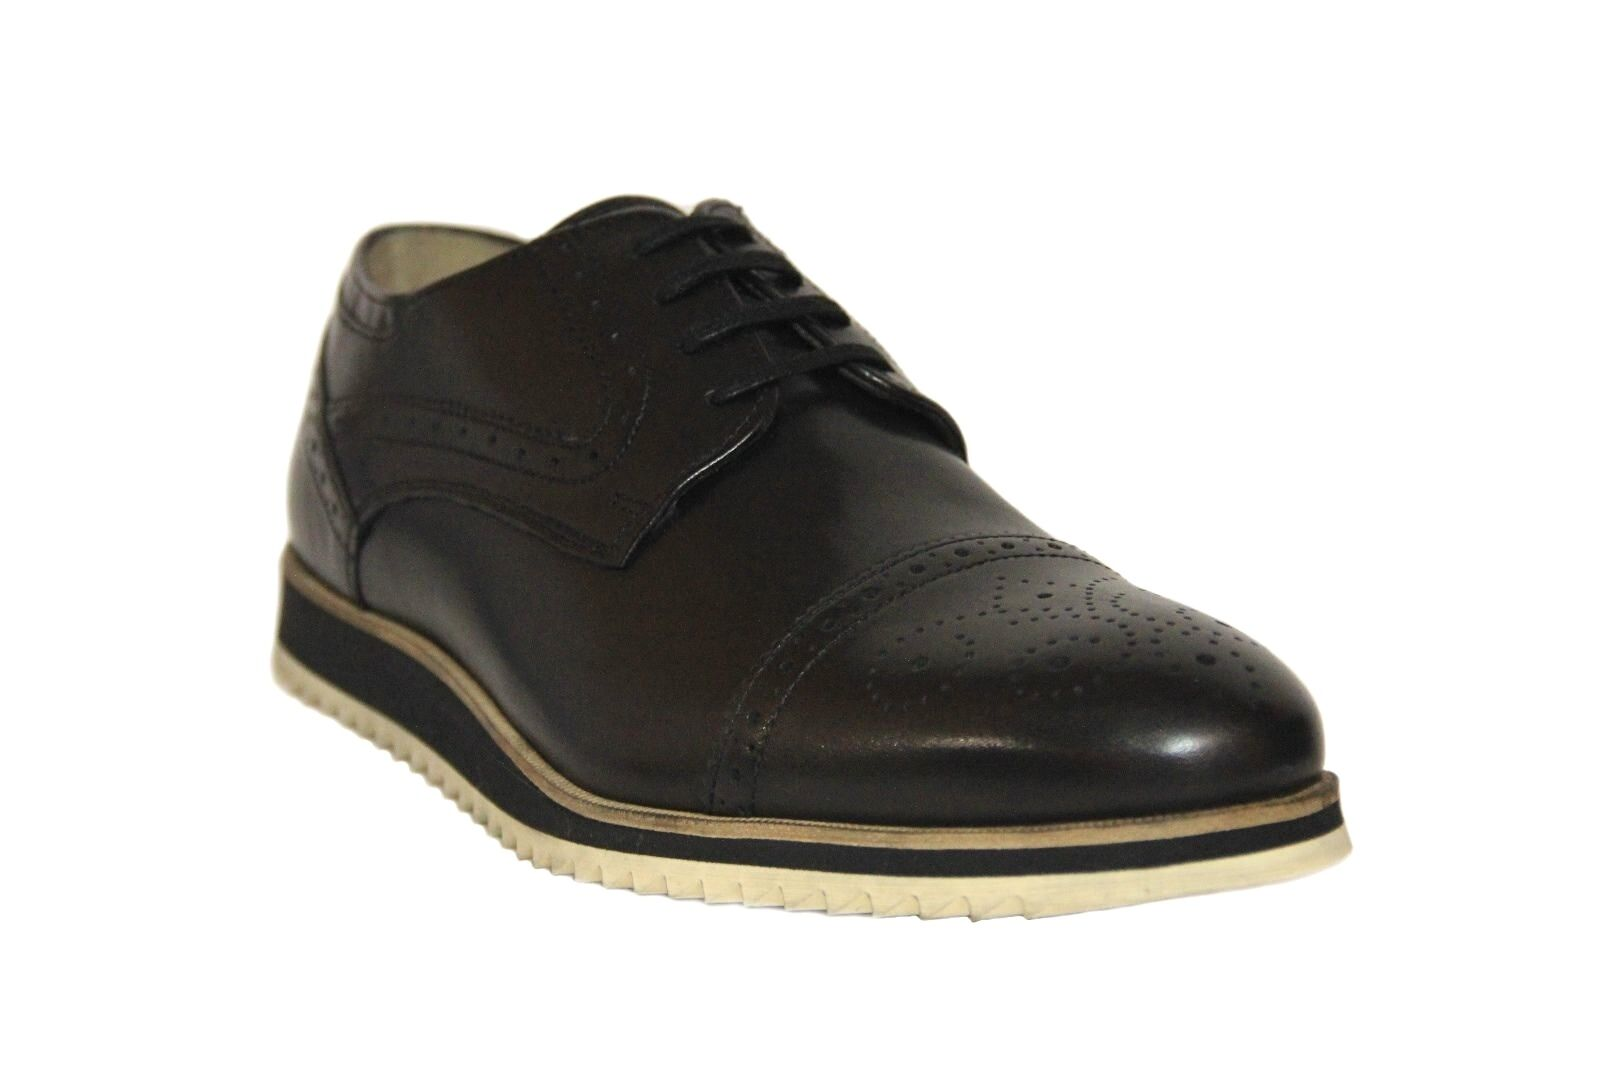 Bacco Bucci Pearce Men's Black Leather Cam Toe Casual Oxford shoes